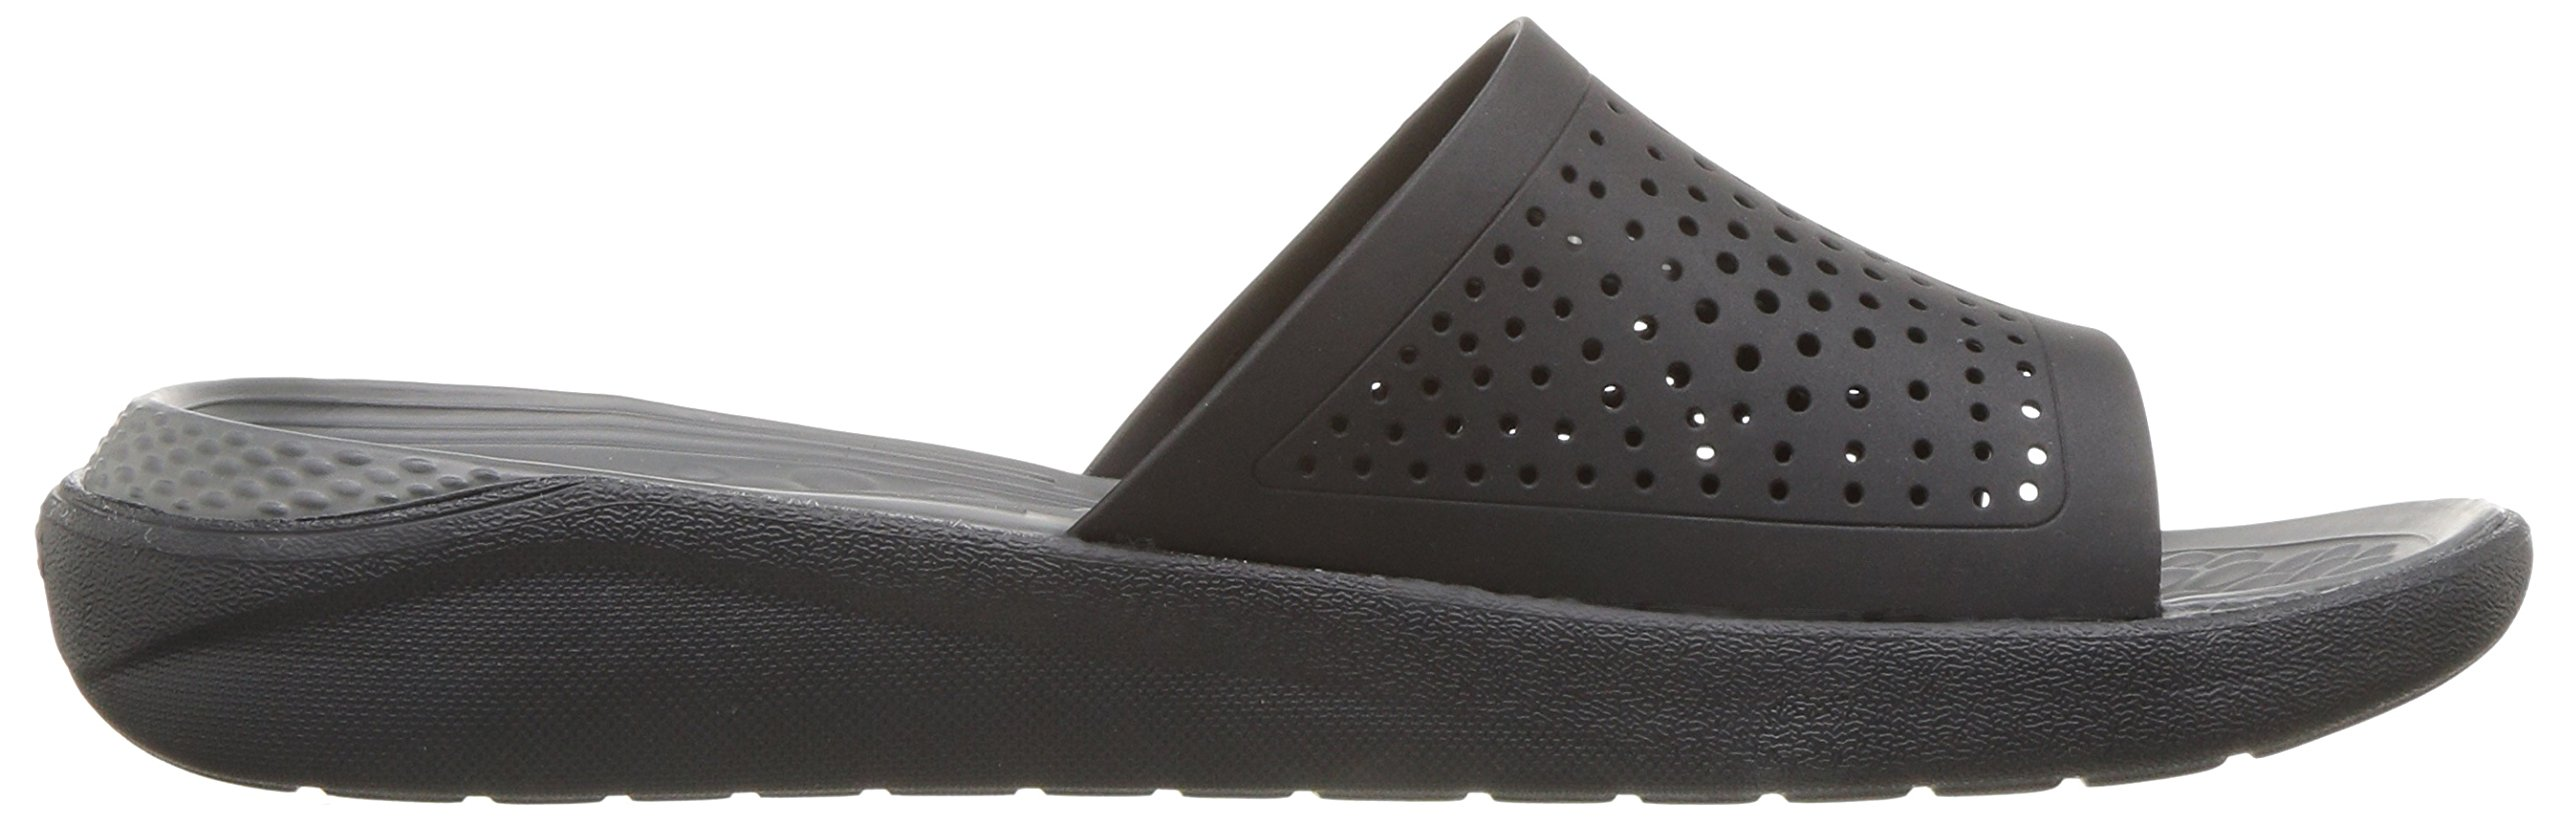 Crocs Unisex-Adults Literide Slide Sandal, Black/Slate Grey, 8 US Men/10 US Women by Crocs (Image #7)